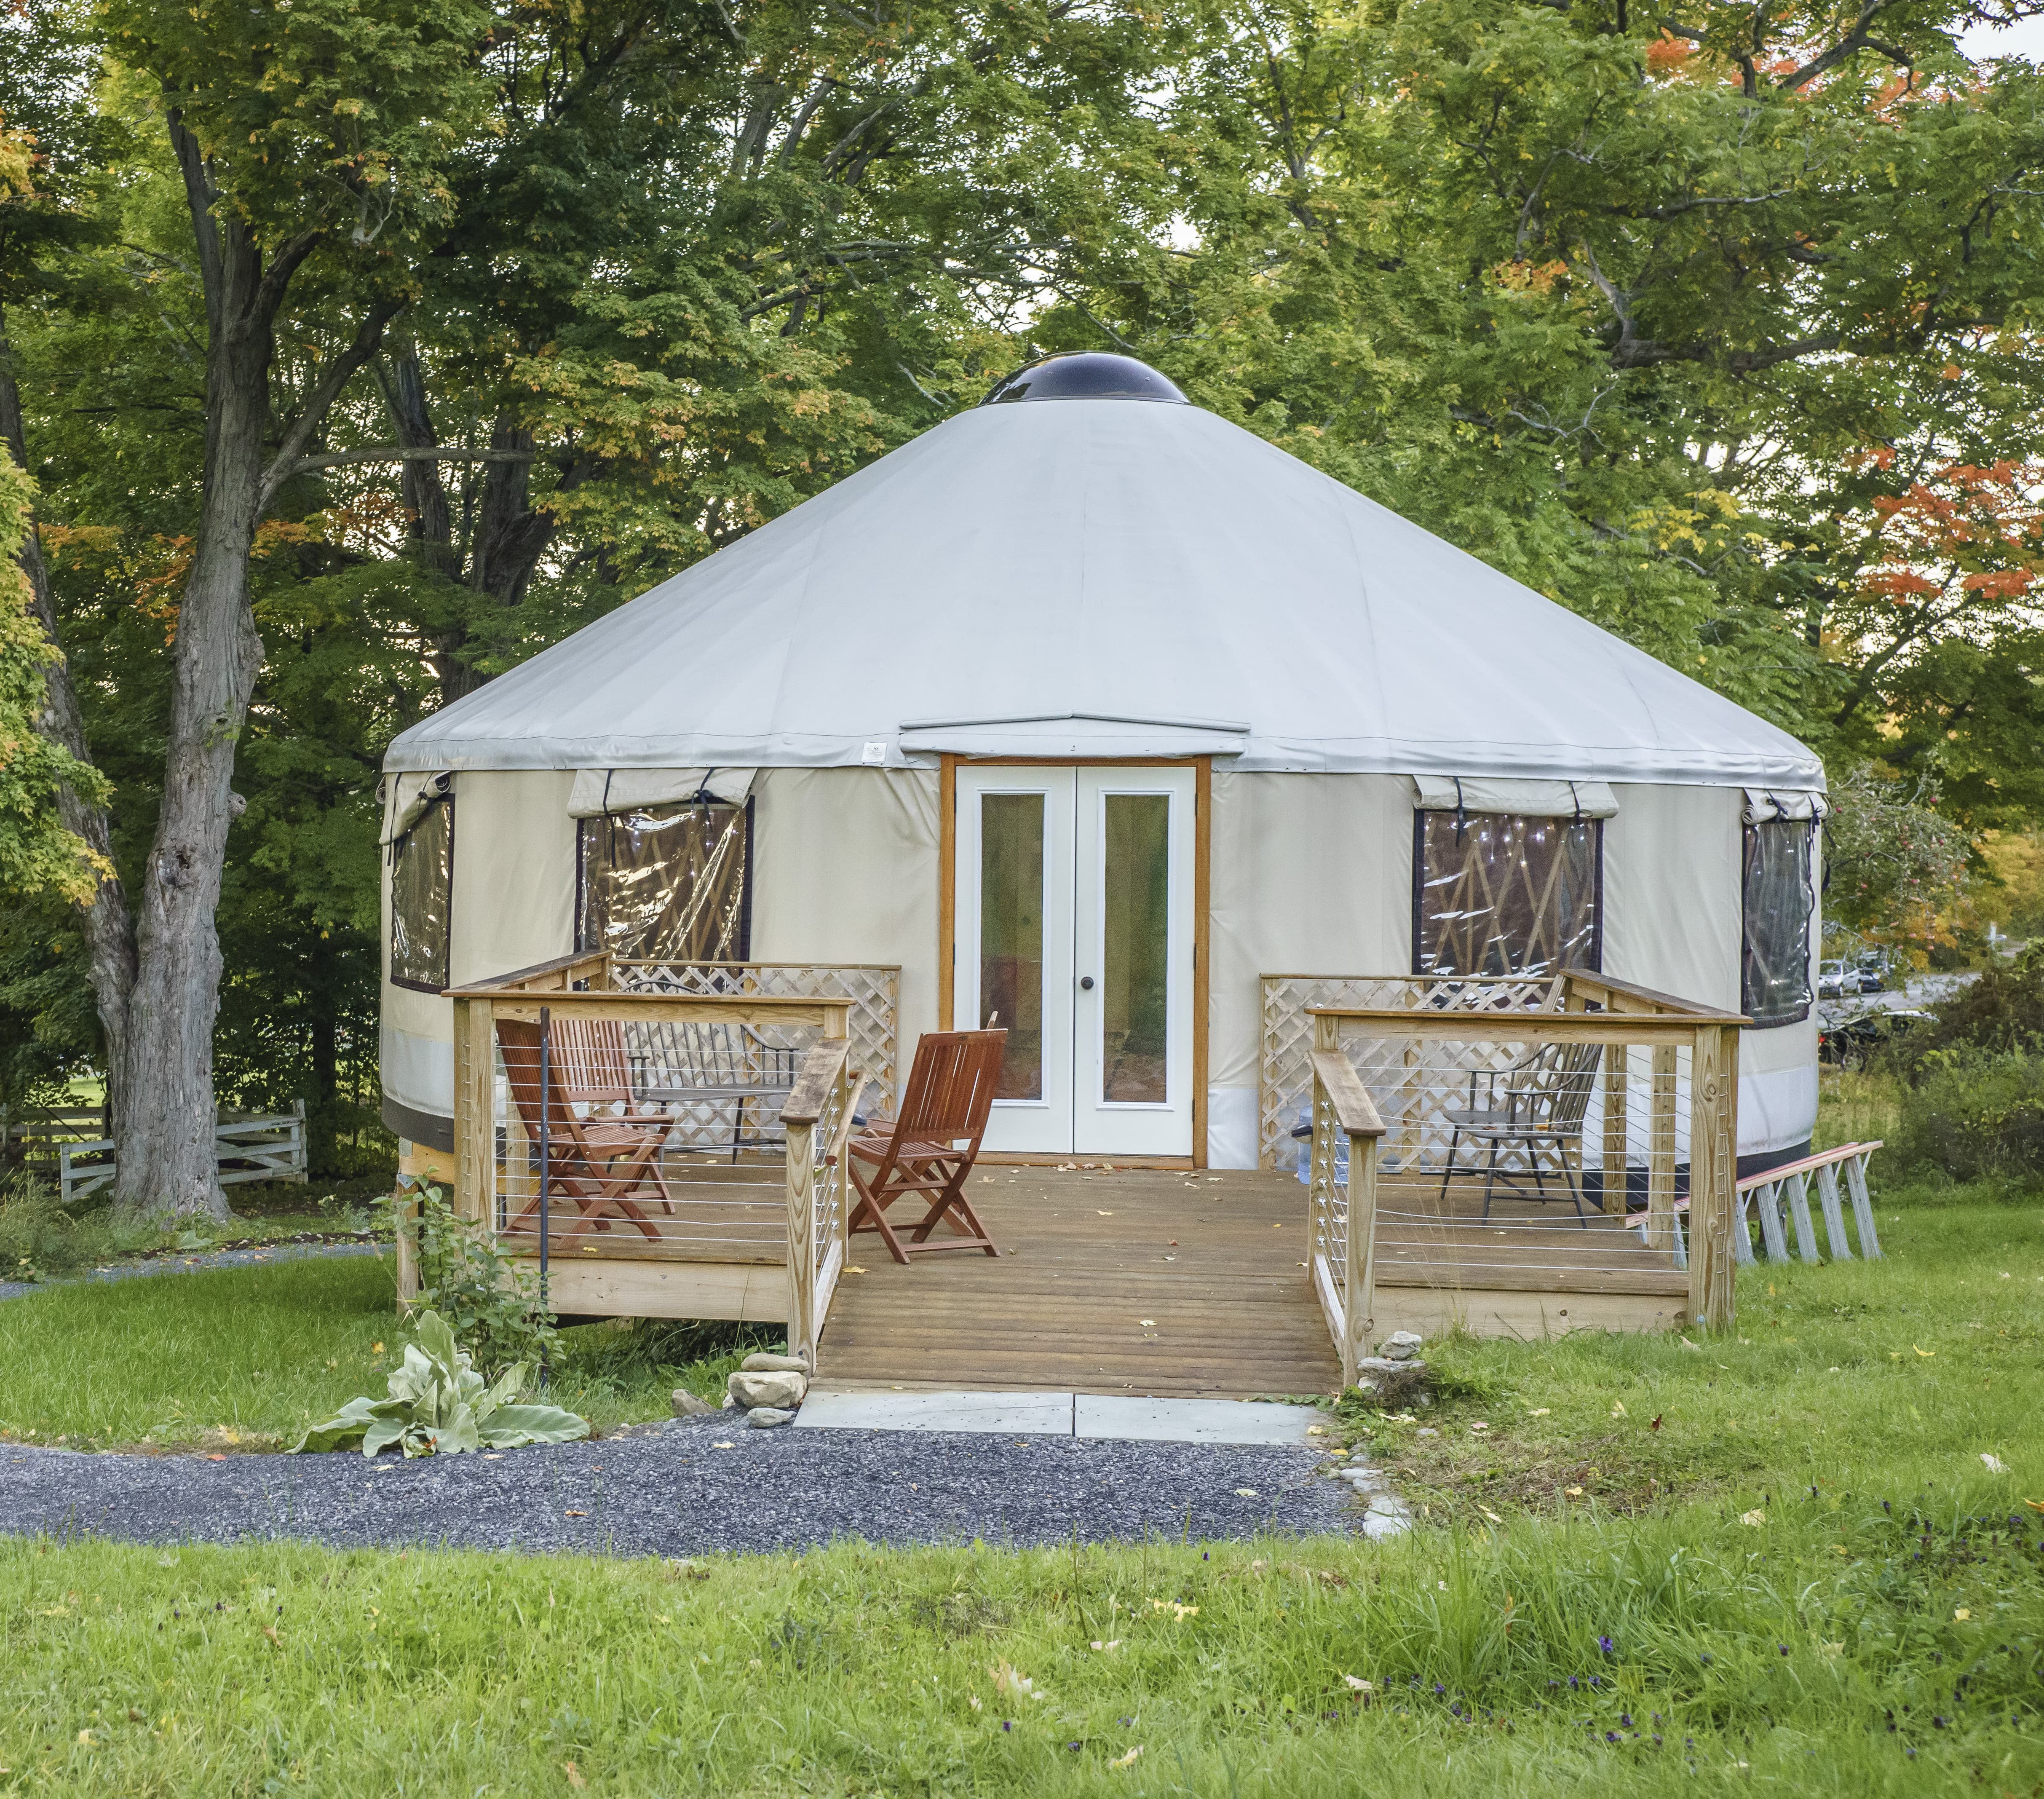 shelter designs yurt with a porch and chairs